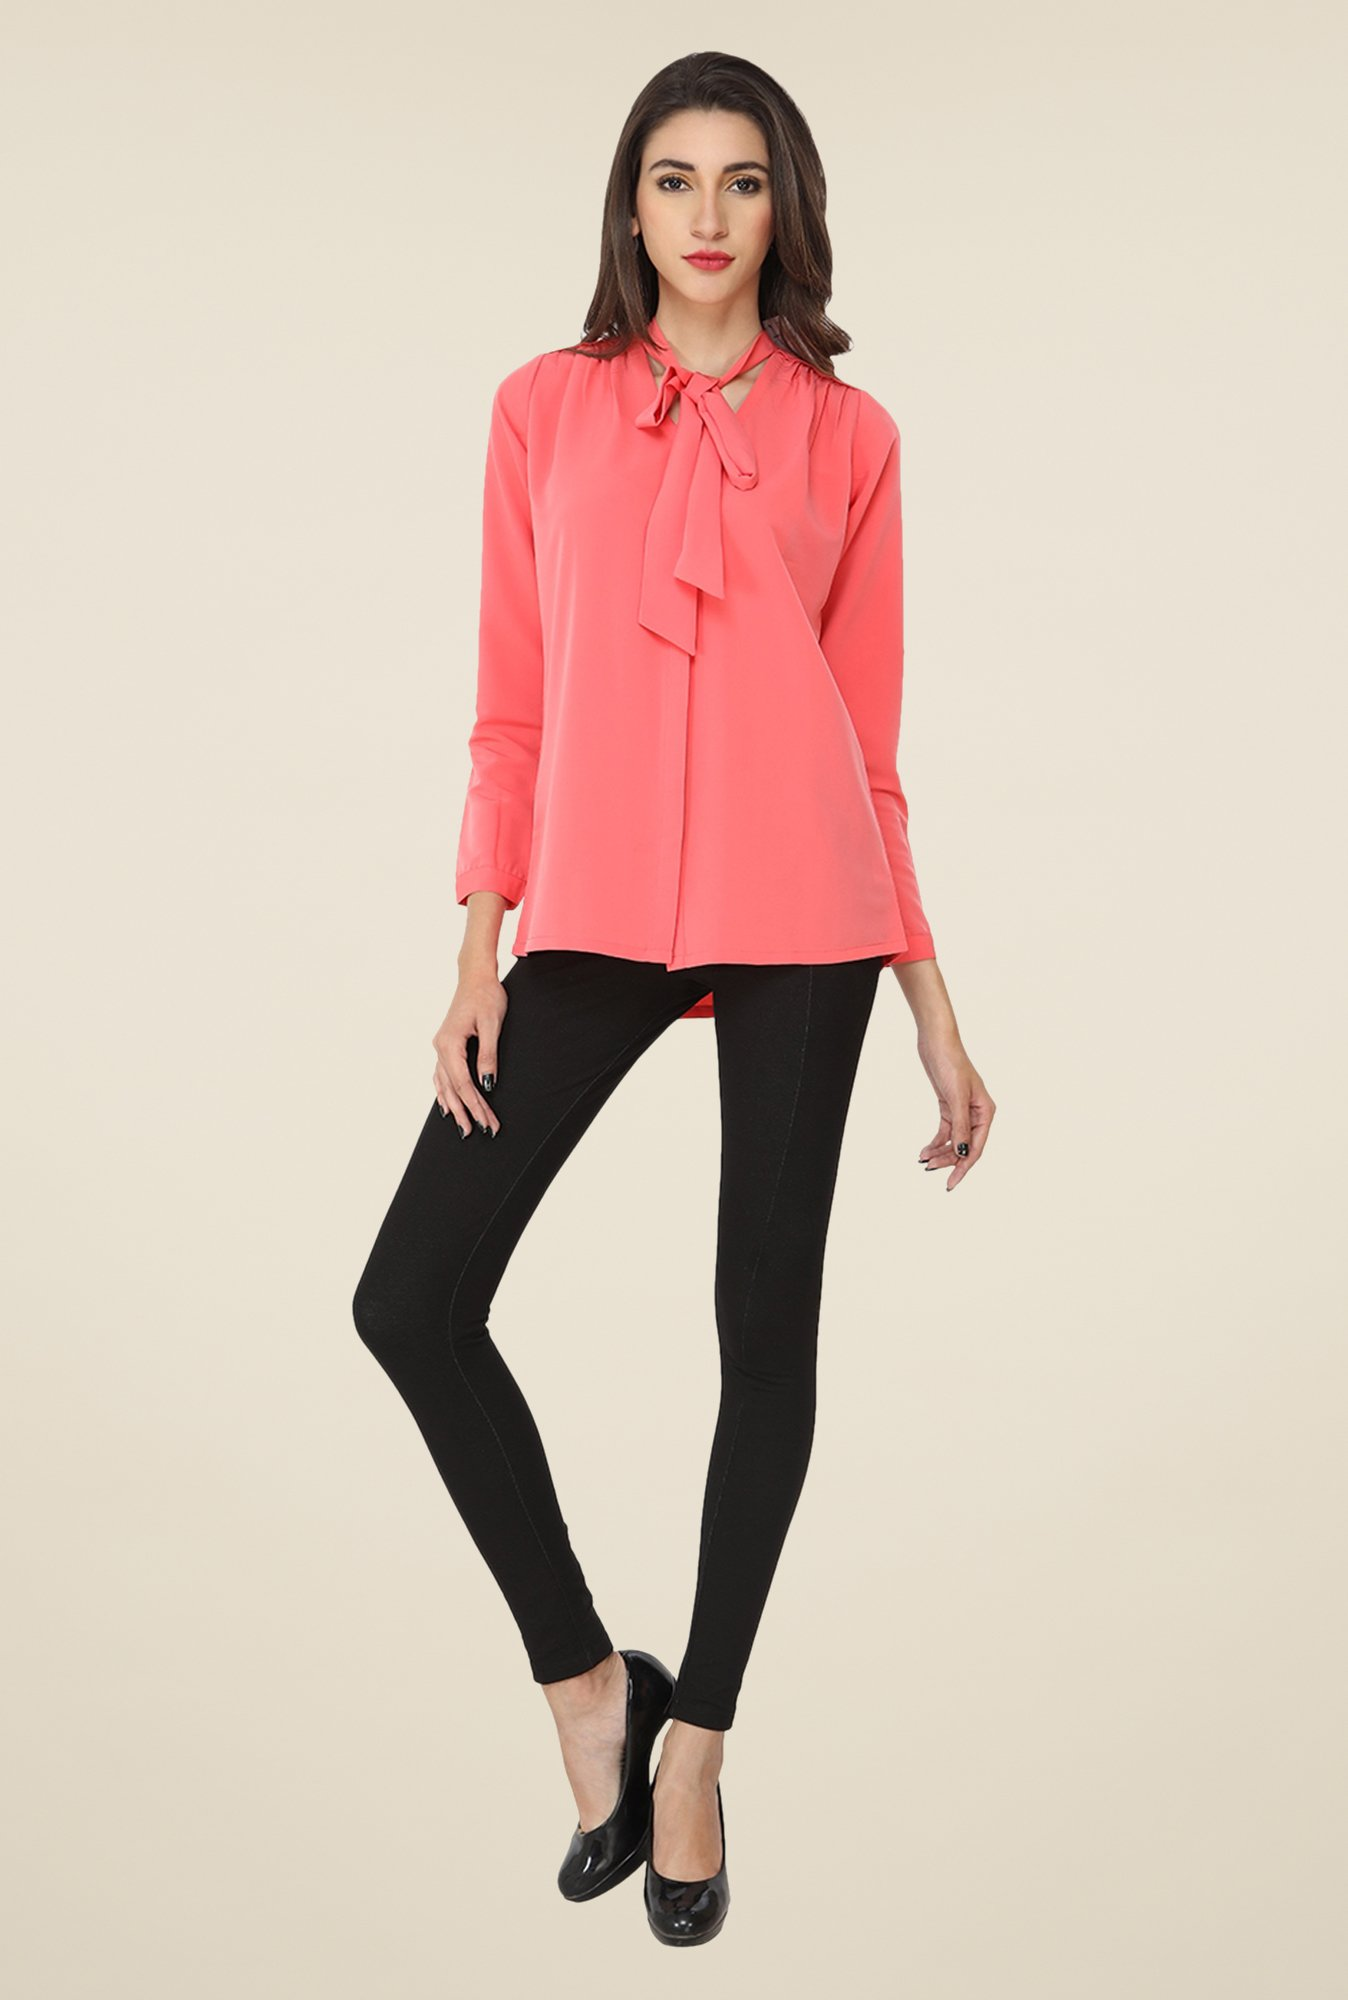 Soie Coral Solid Top